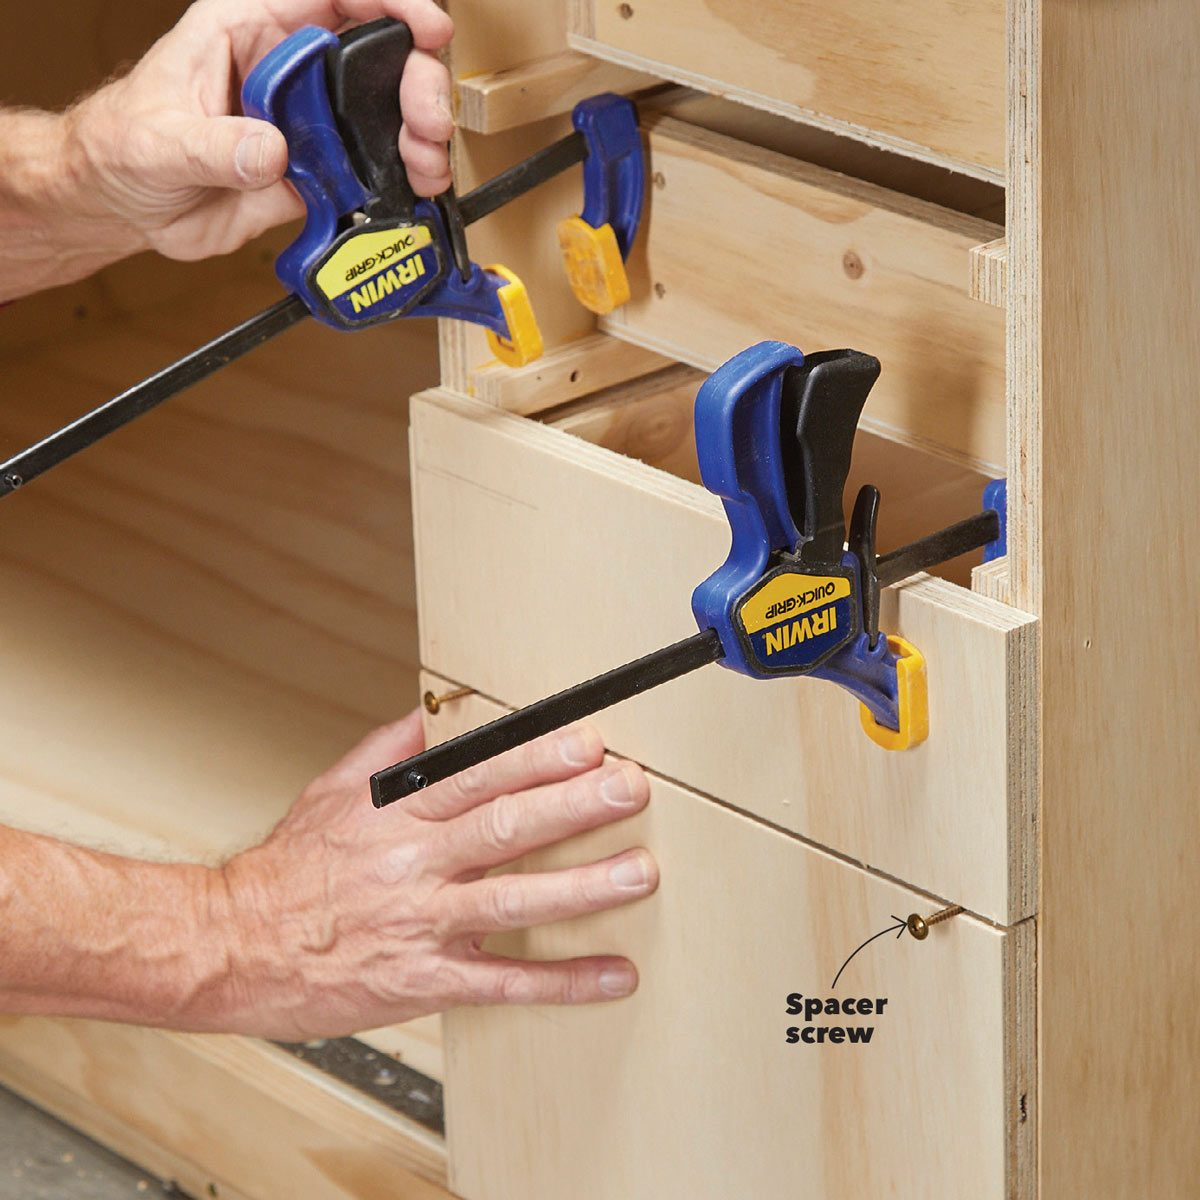 Install the drawer fronts